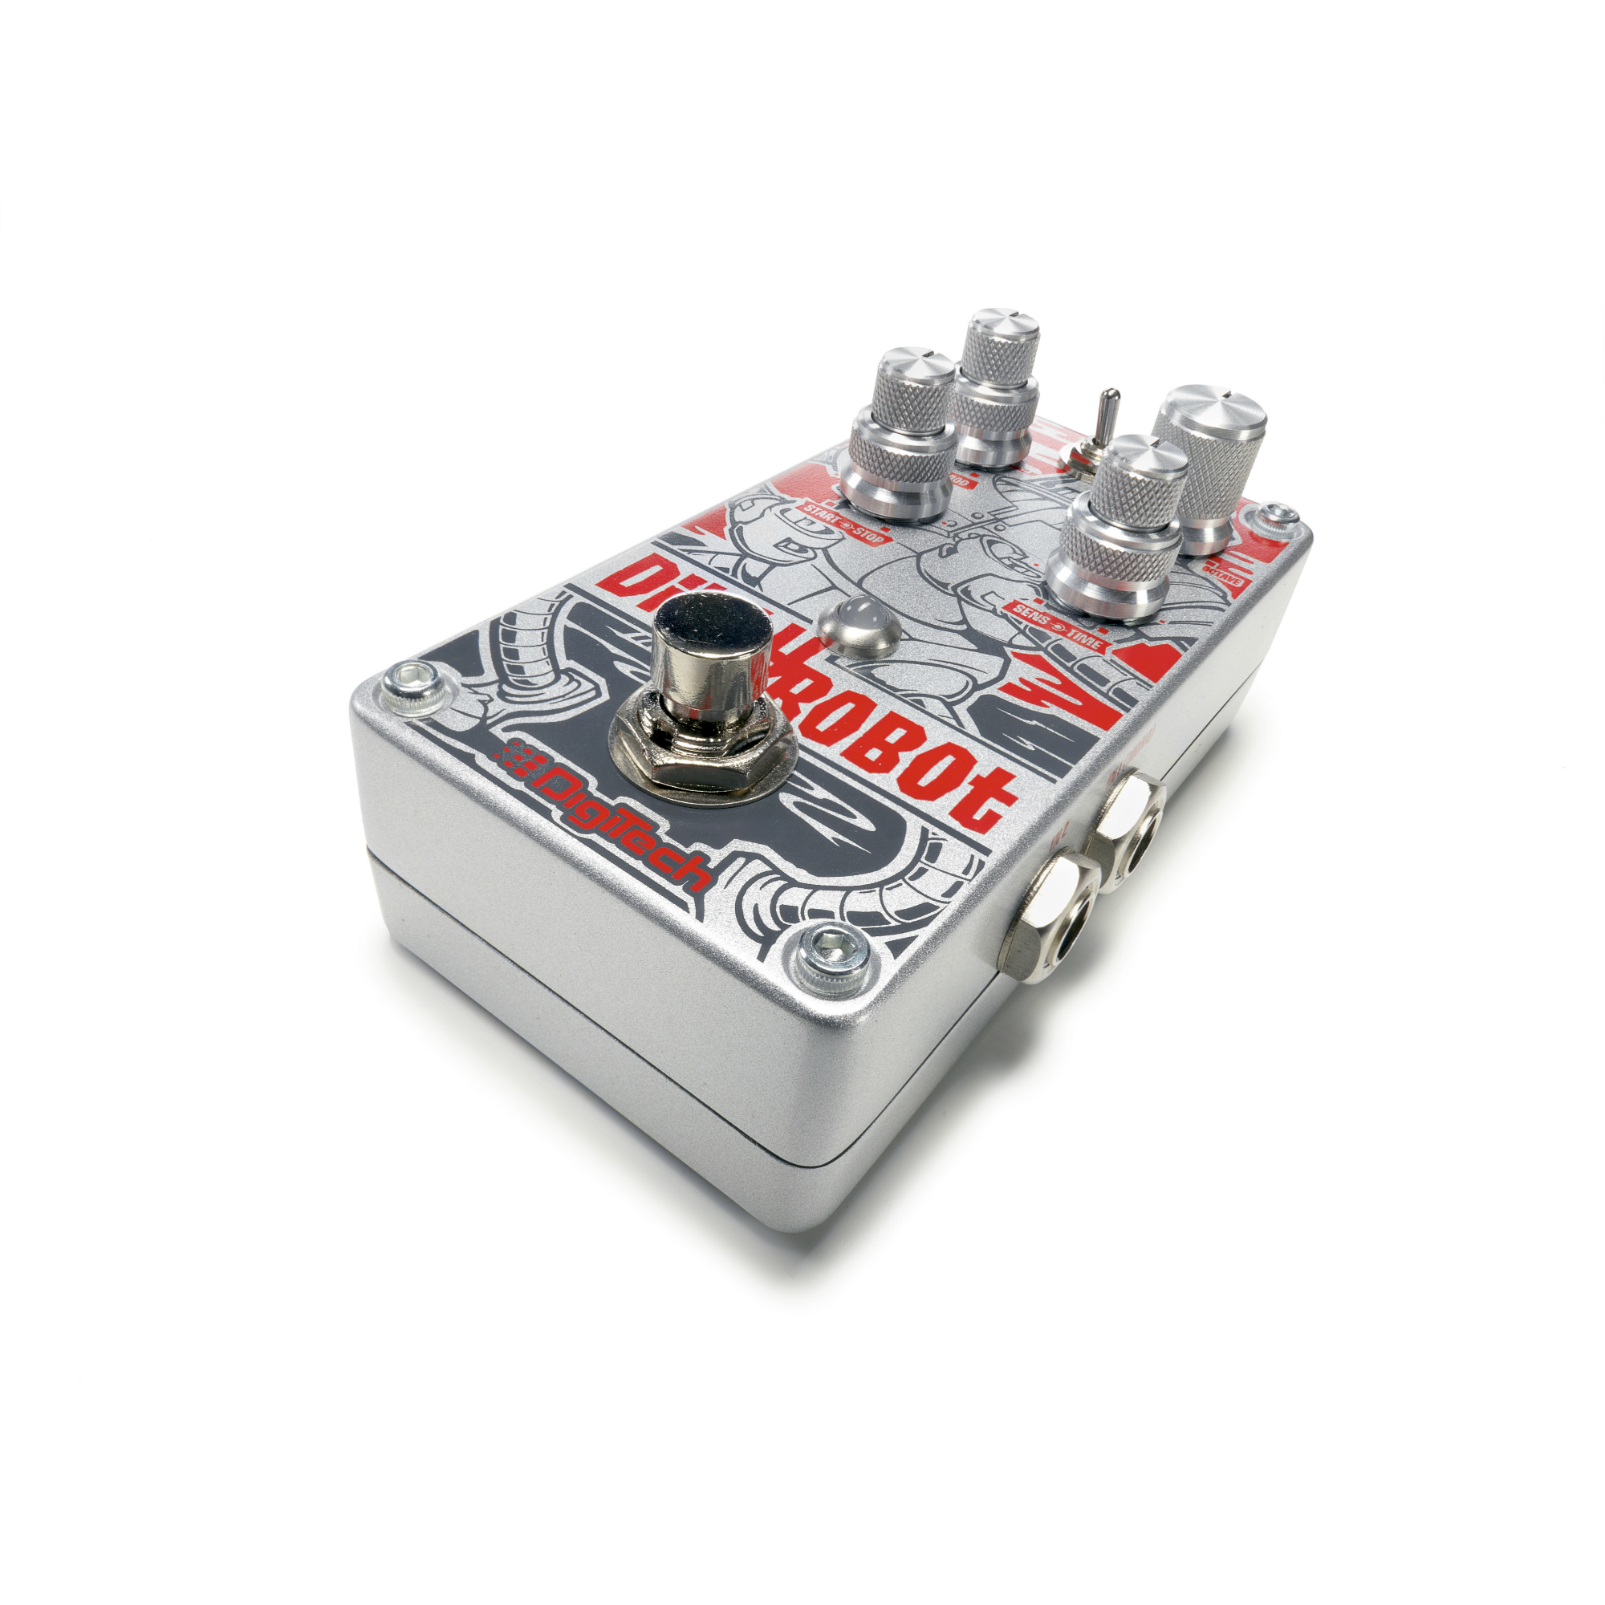 Dirty Robot - Red - Stereo Mini-Synth Pedal - Detailshot 1